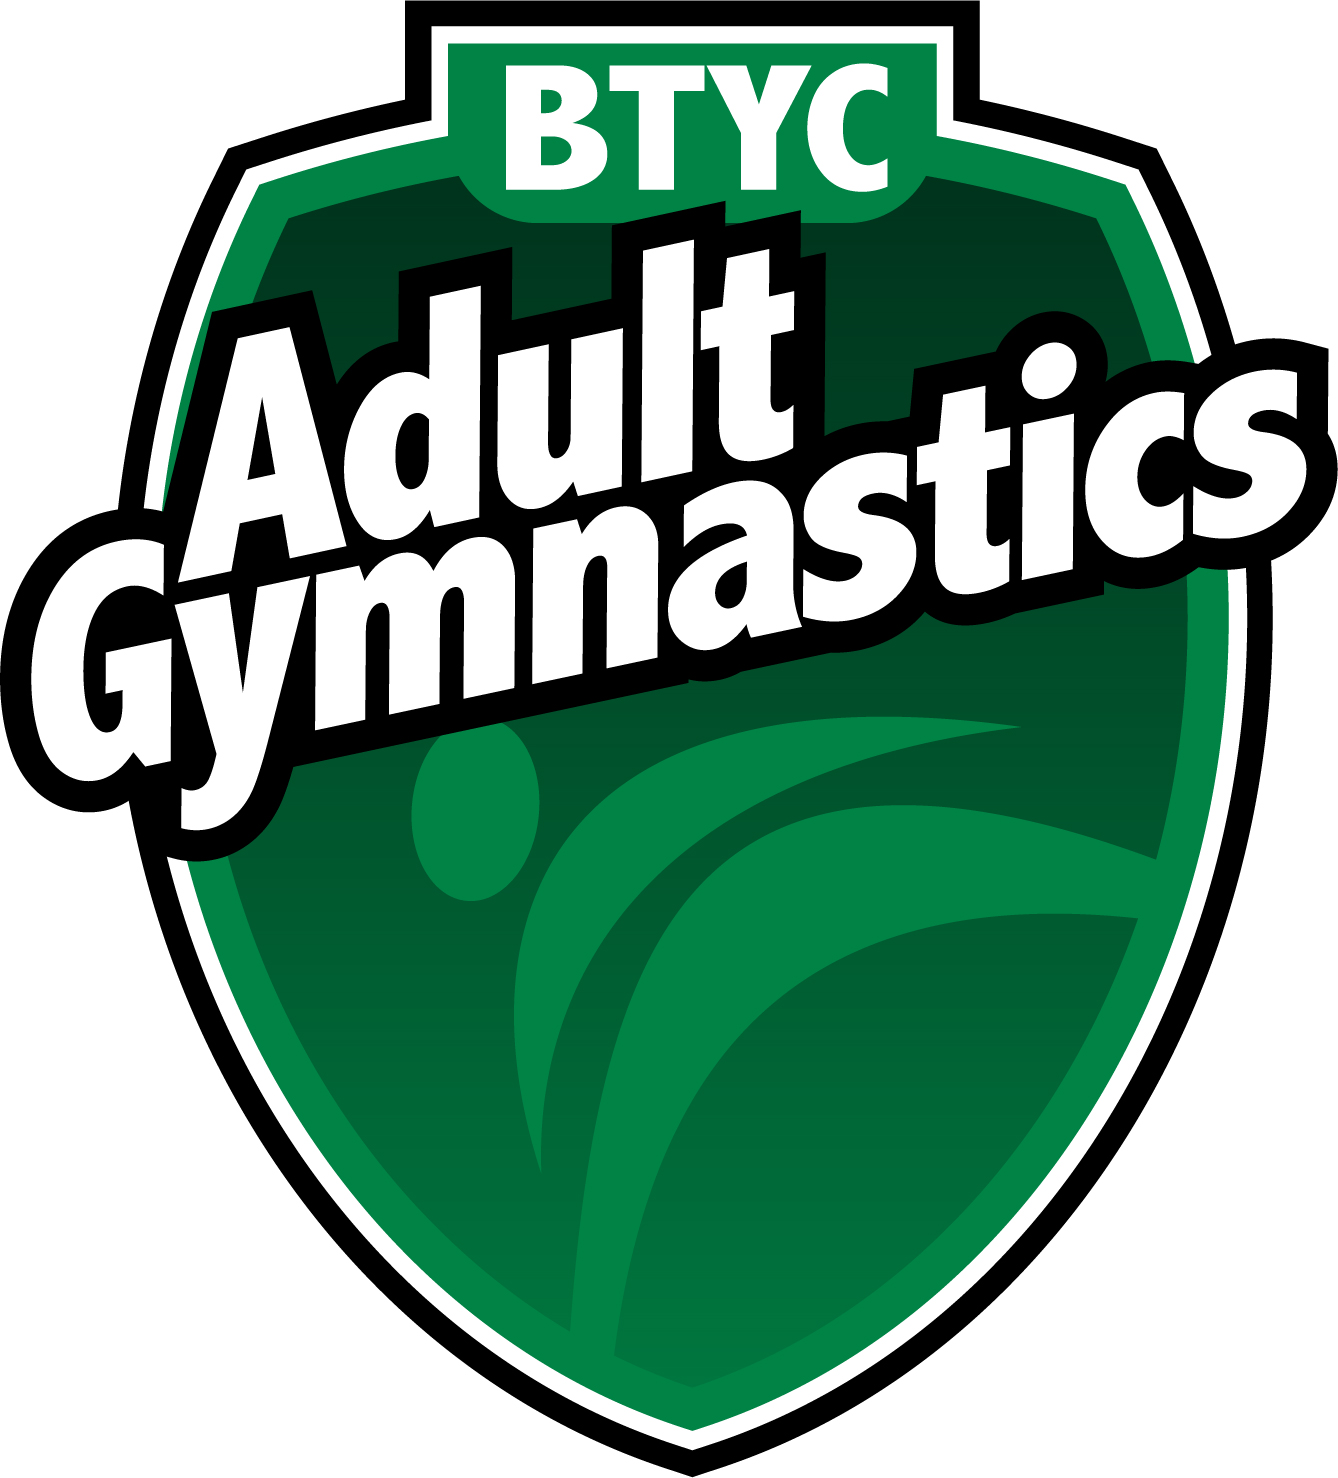 adult gymnastics at btyc